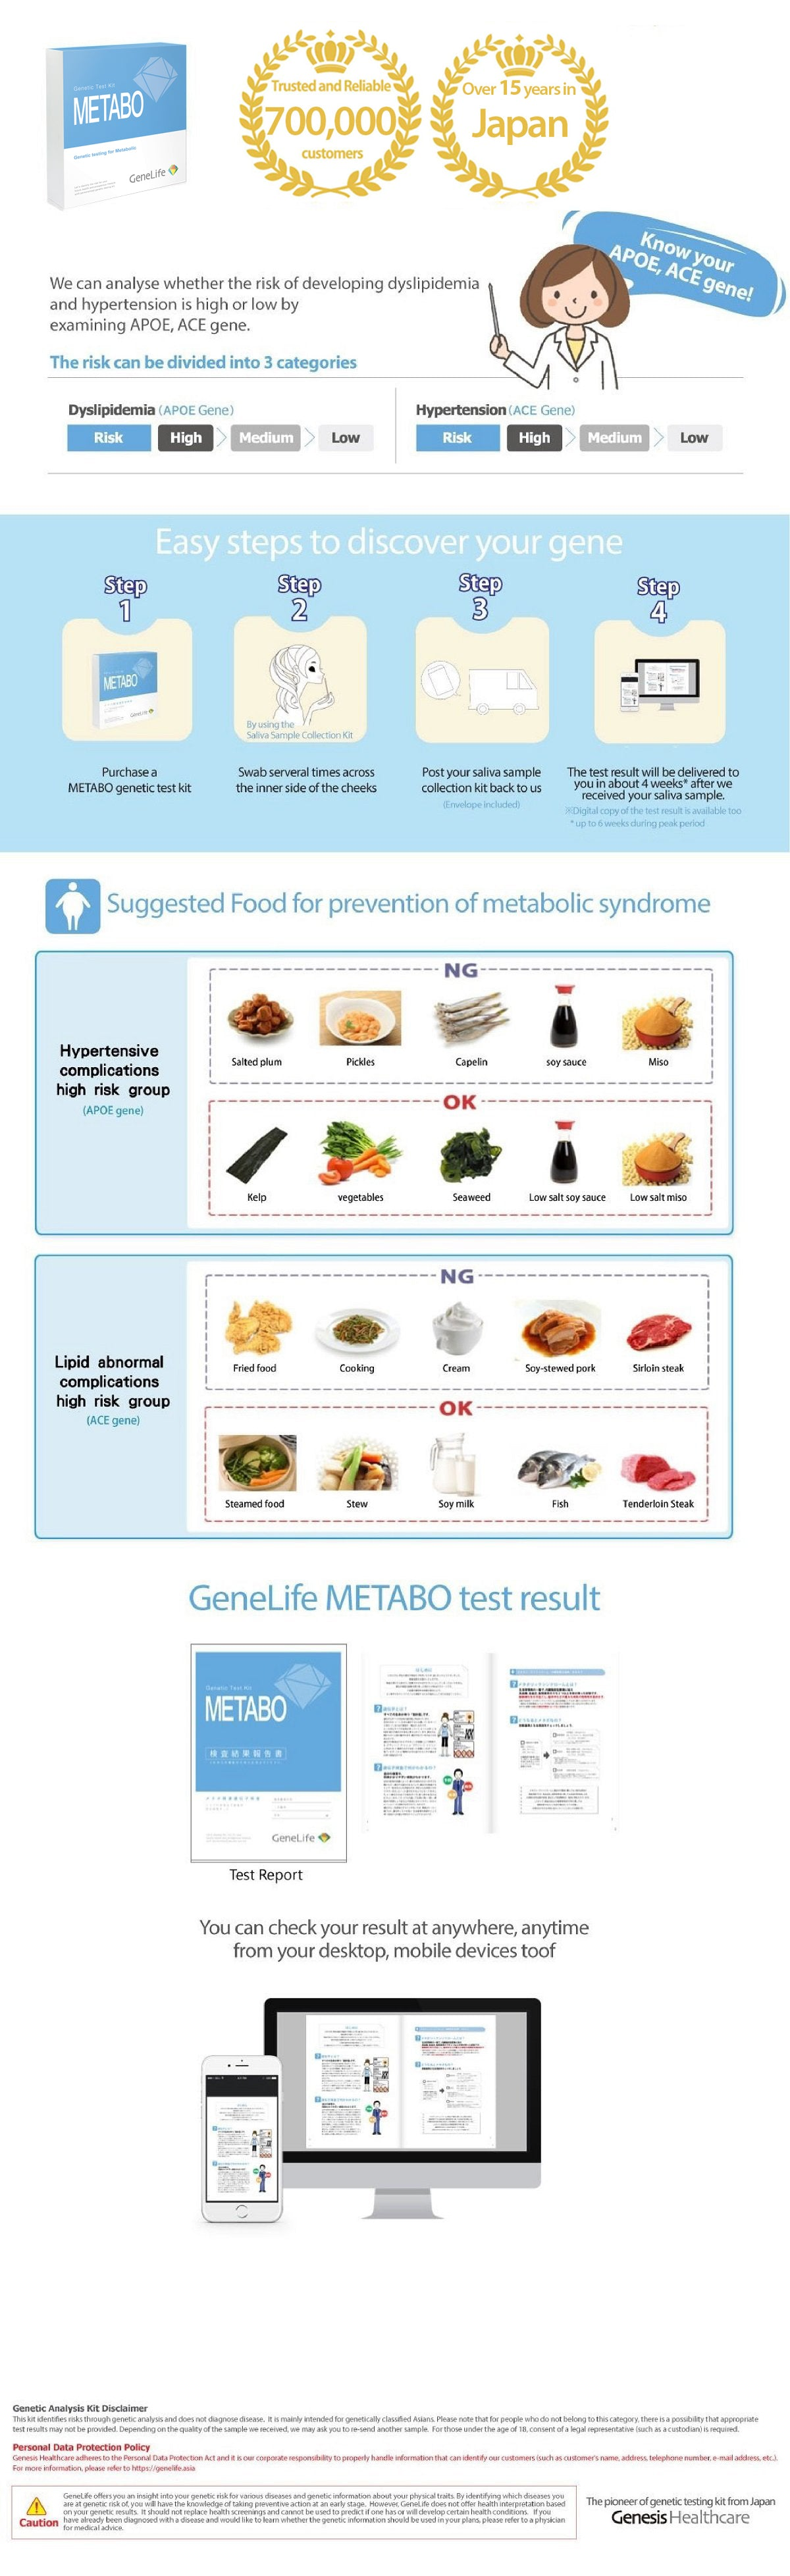 genelife metabo dna test